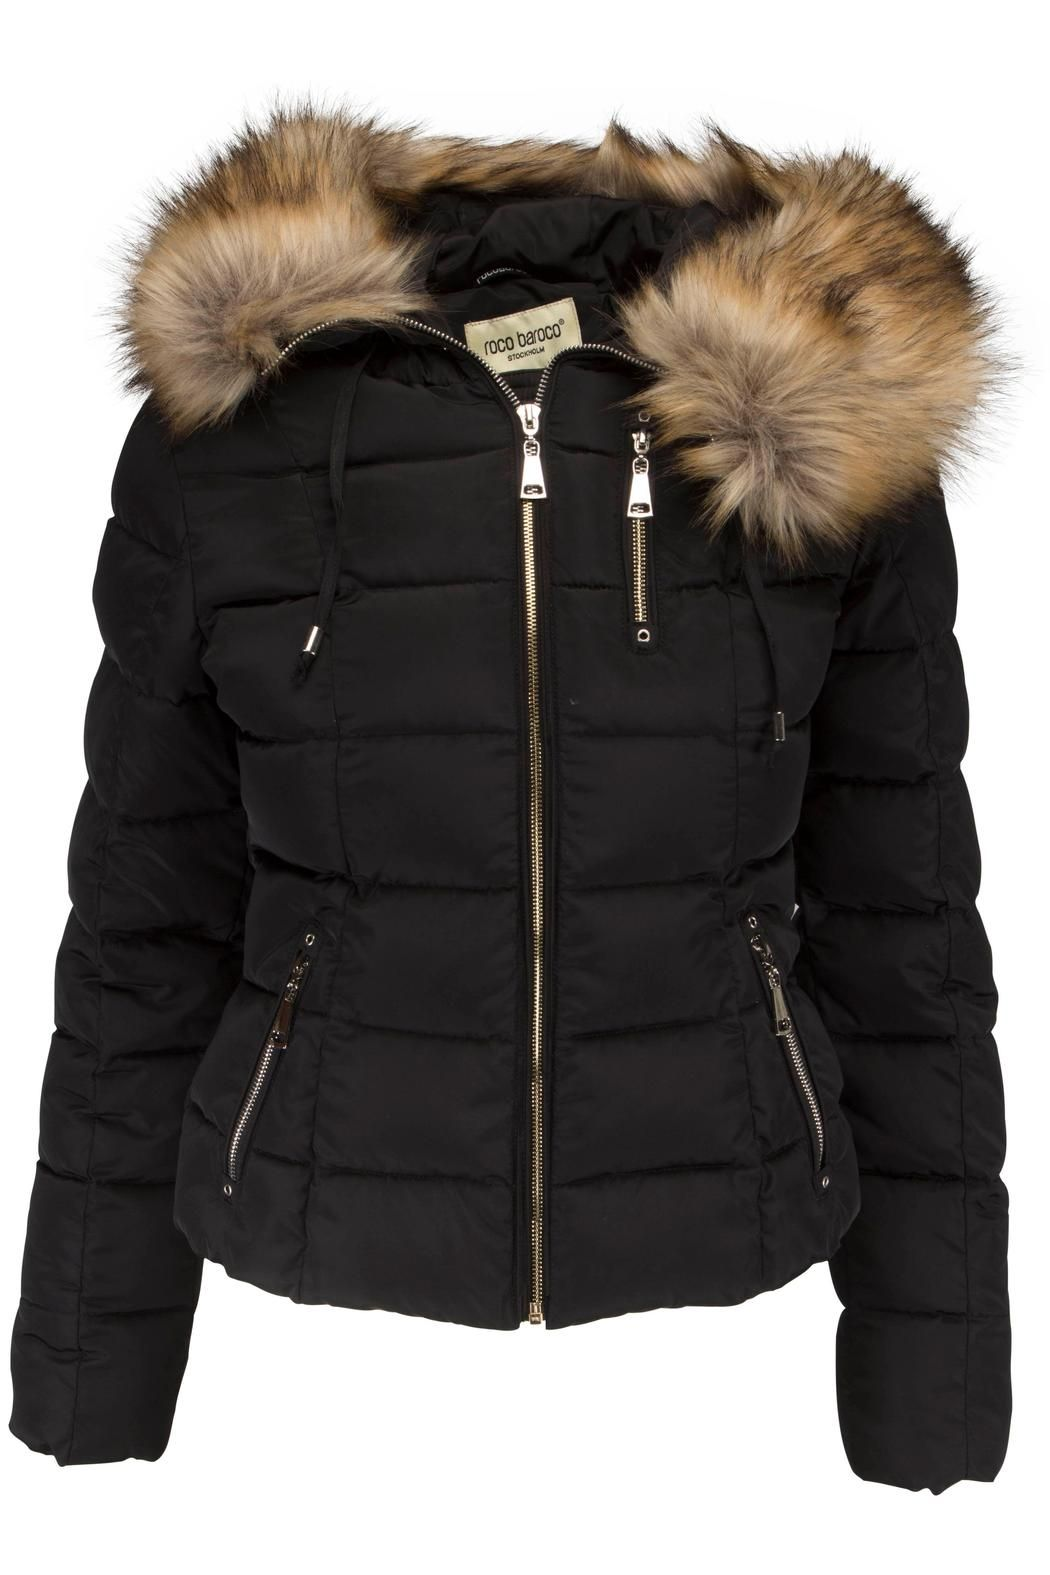 f3f3940035f This is a short down jacket with hood and zippers in gold. The edge of the  hood is covered with removable faux fur. It comes in100% DuPont fiber.